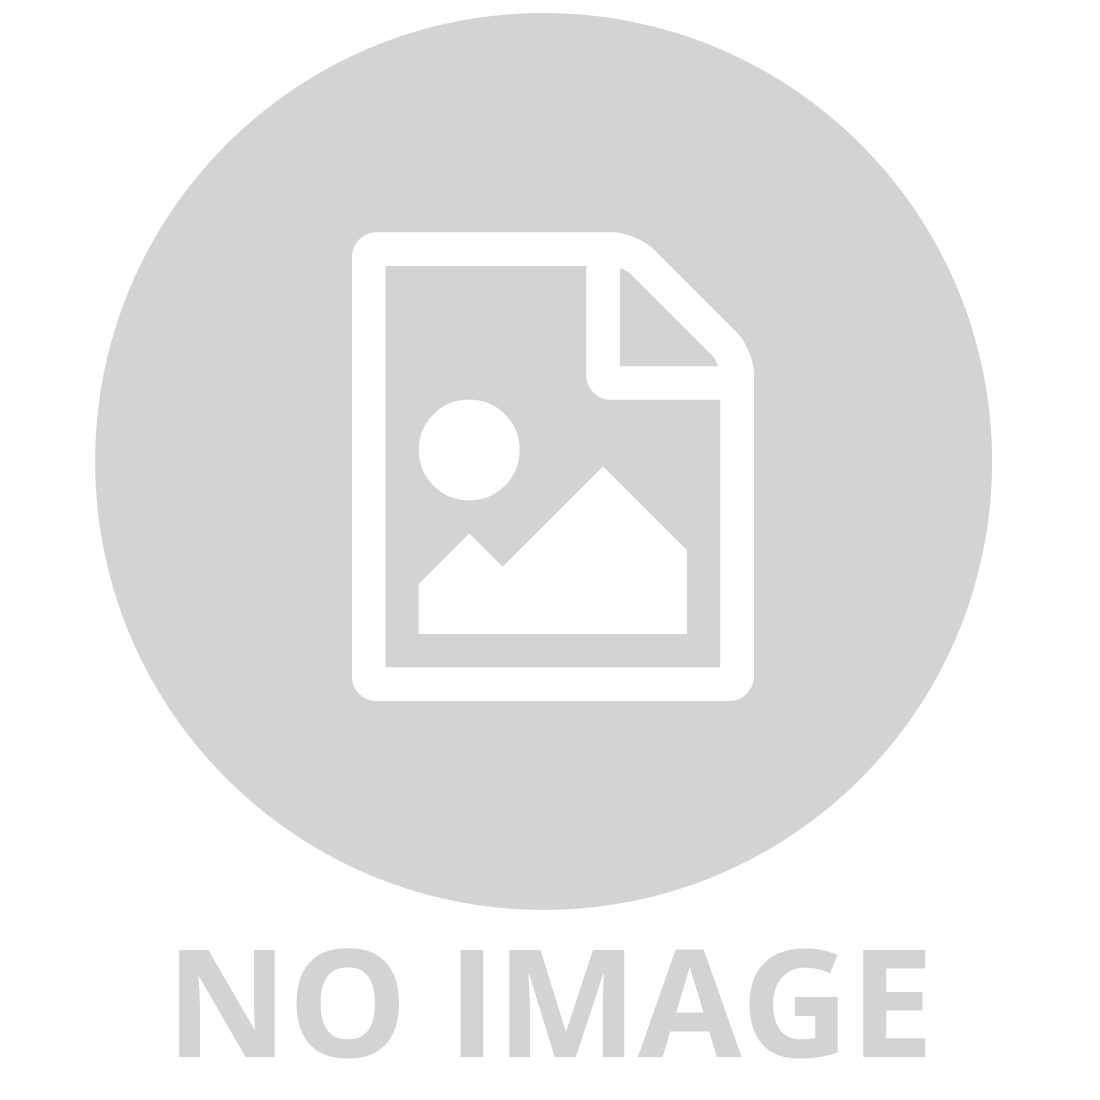 SOFIA THE FIRST - PRINCESS SOFIA & CLOVER